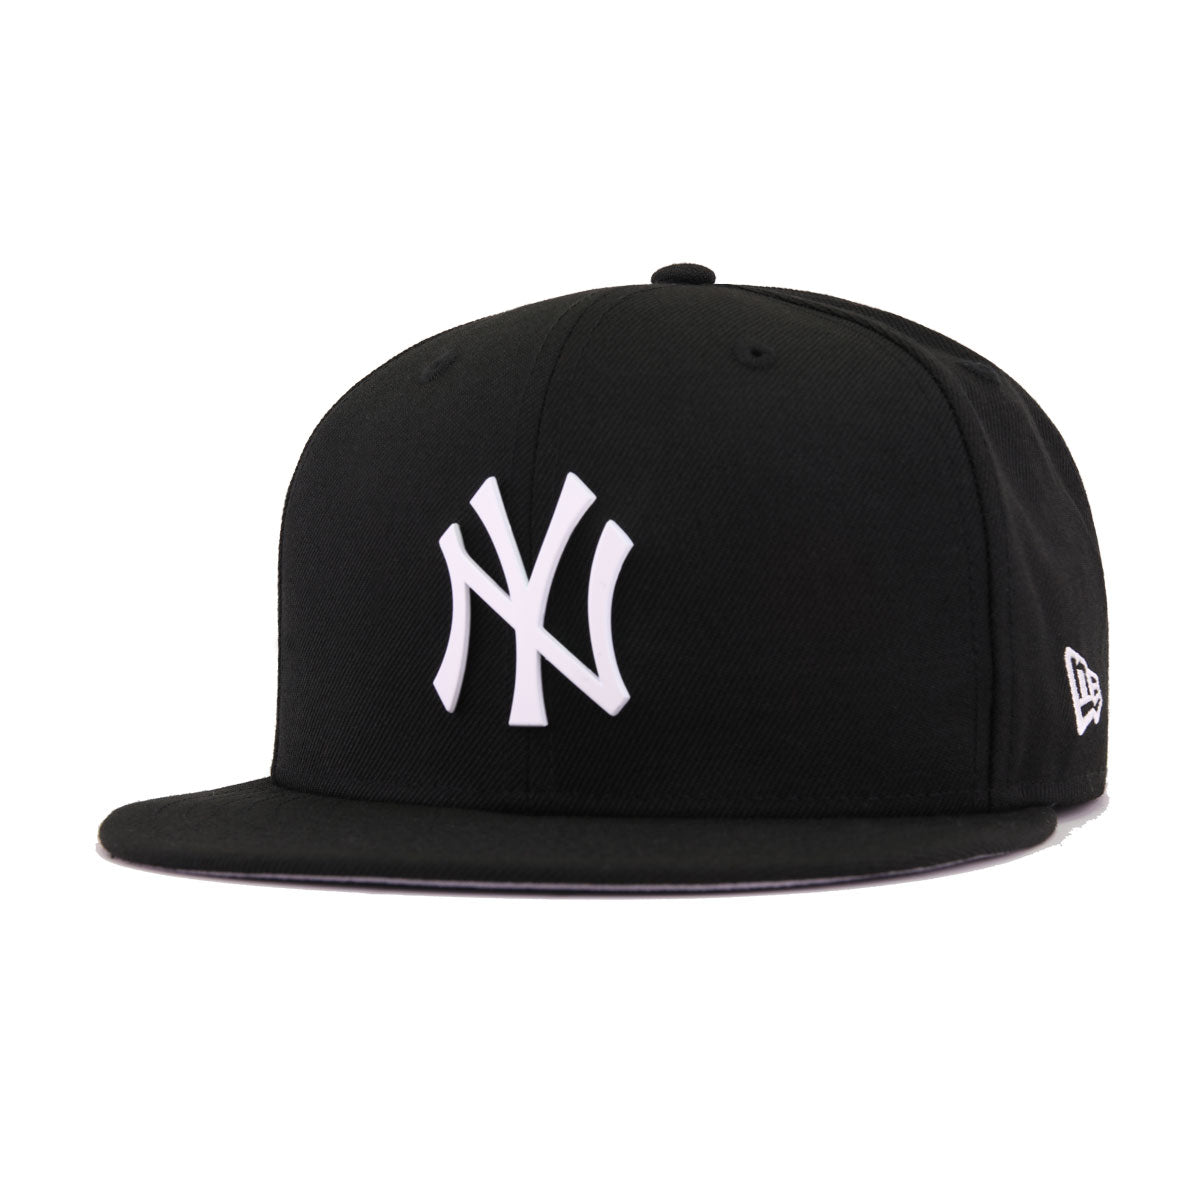 New York Yankees Black White Metal Badge New Era 9Fifty Snapback